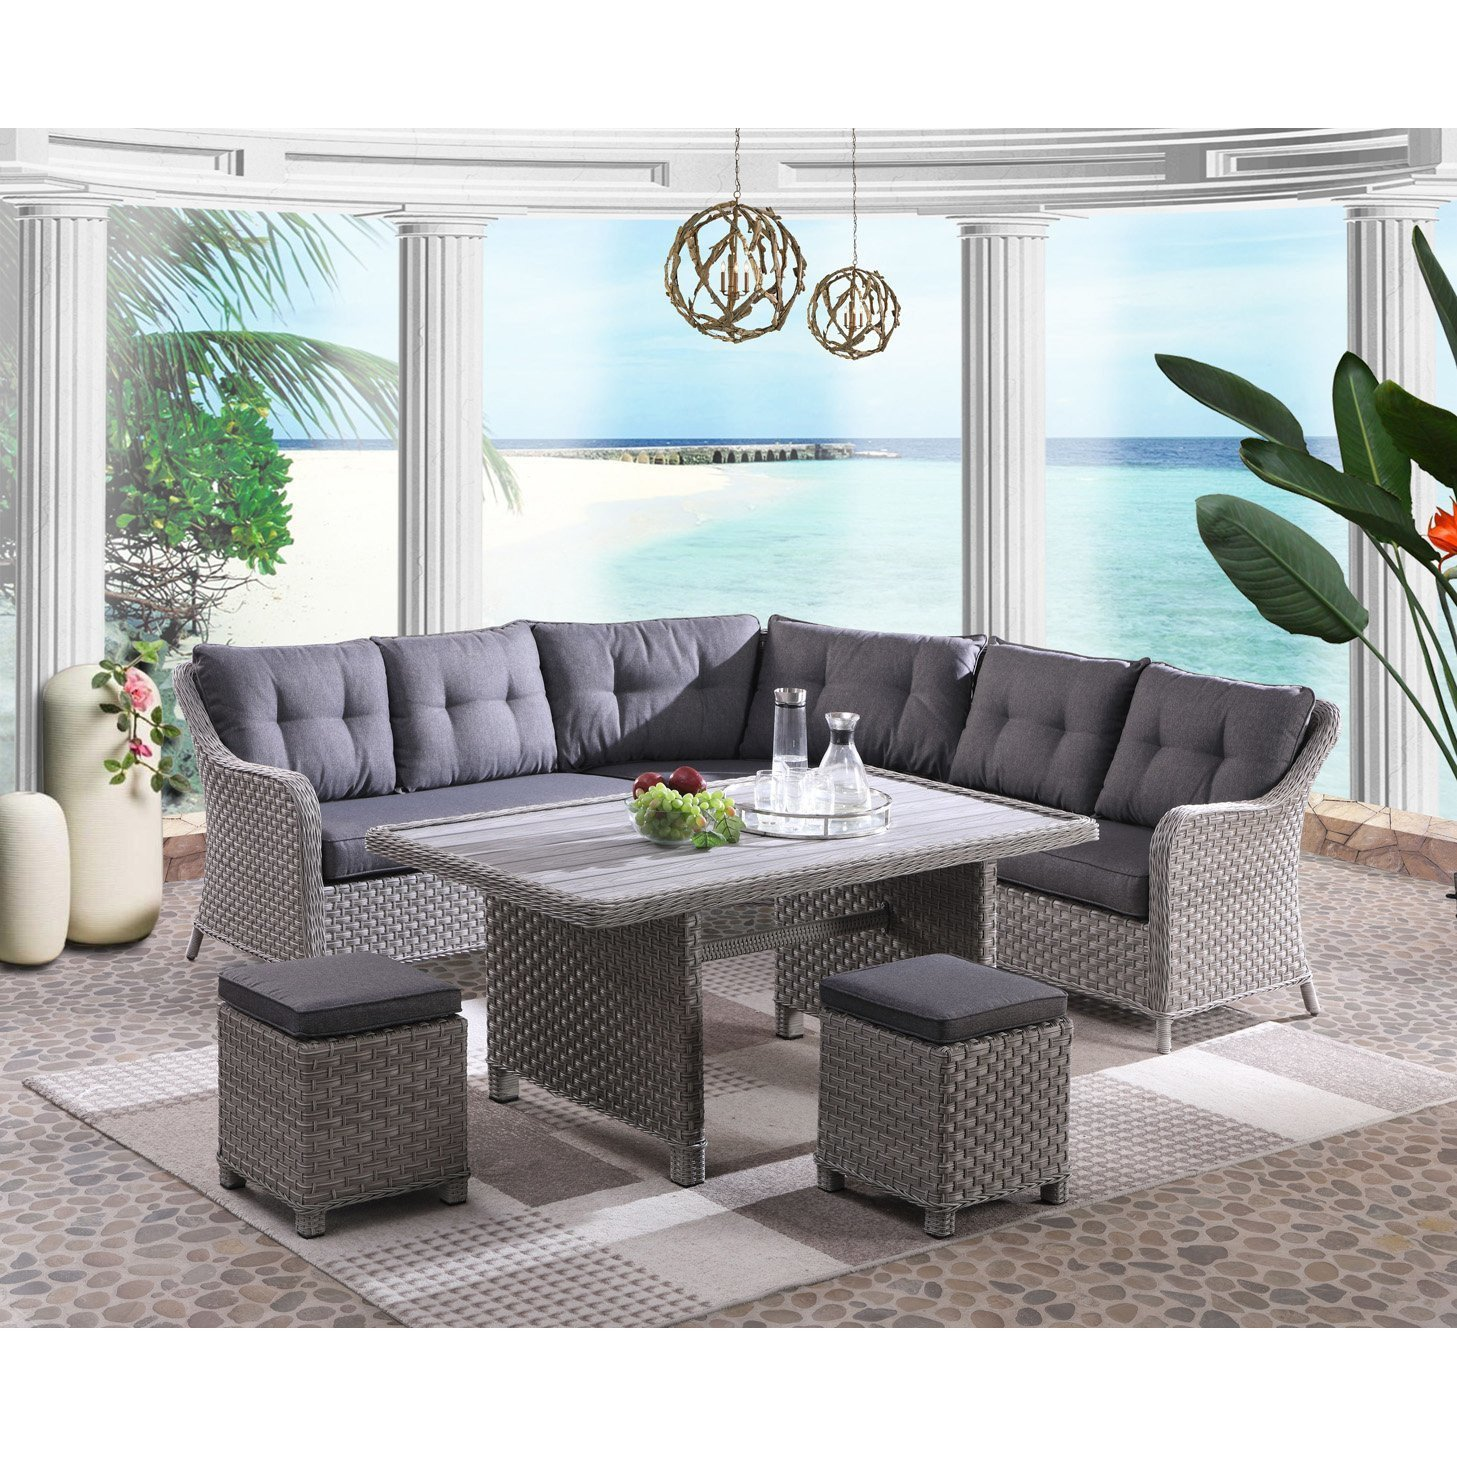 Bedroom Furniture Sale Clearance Luxury Panama Cruise Sectional Dining Set